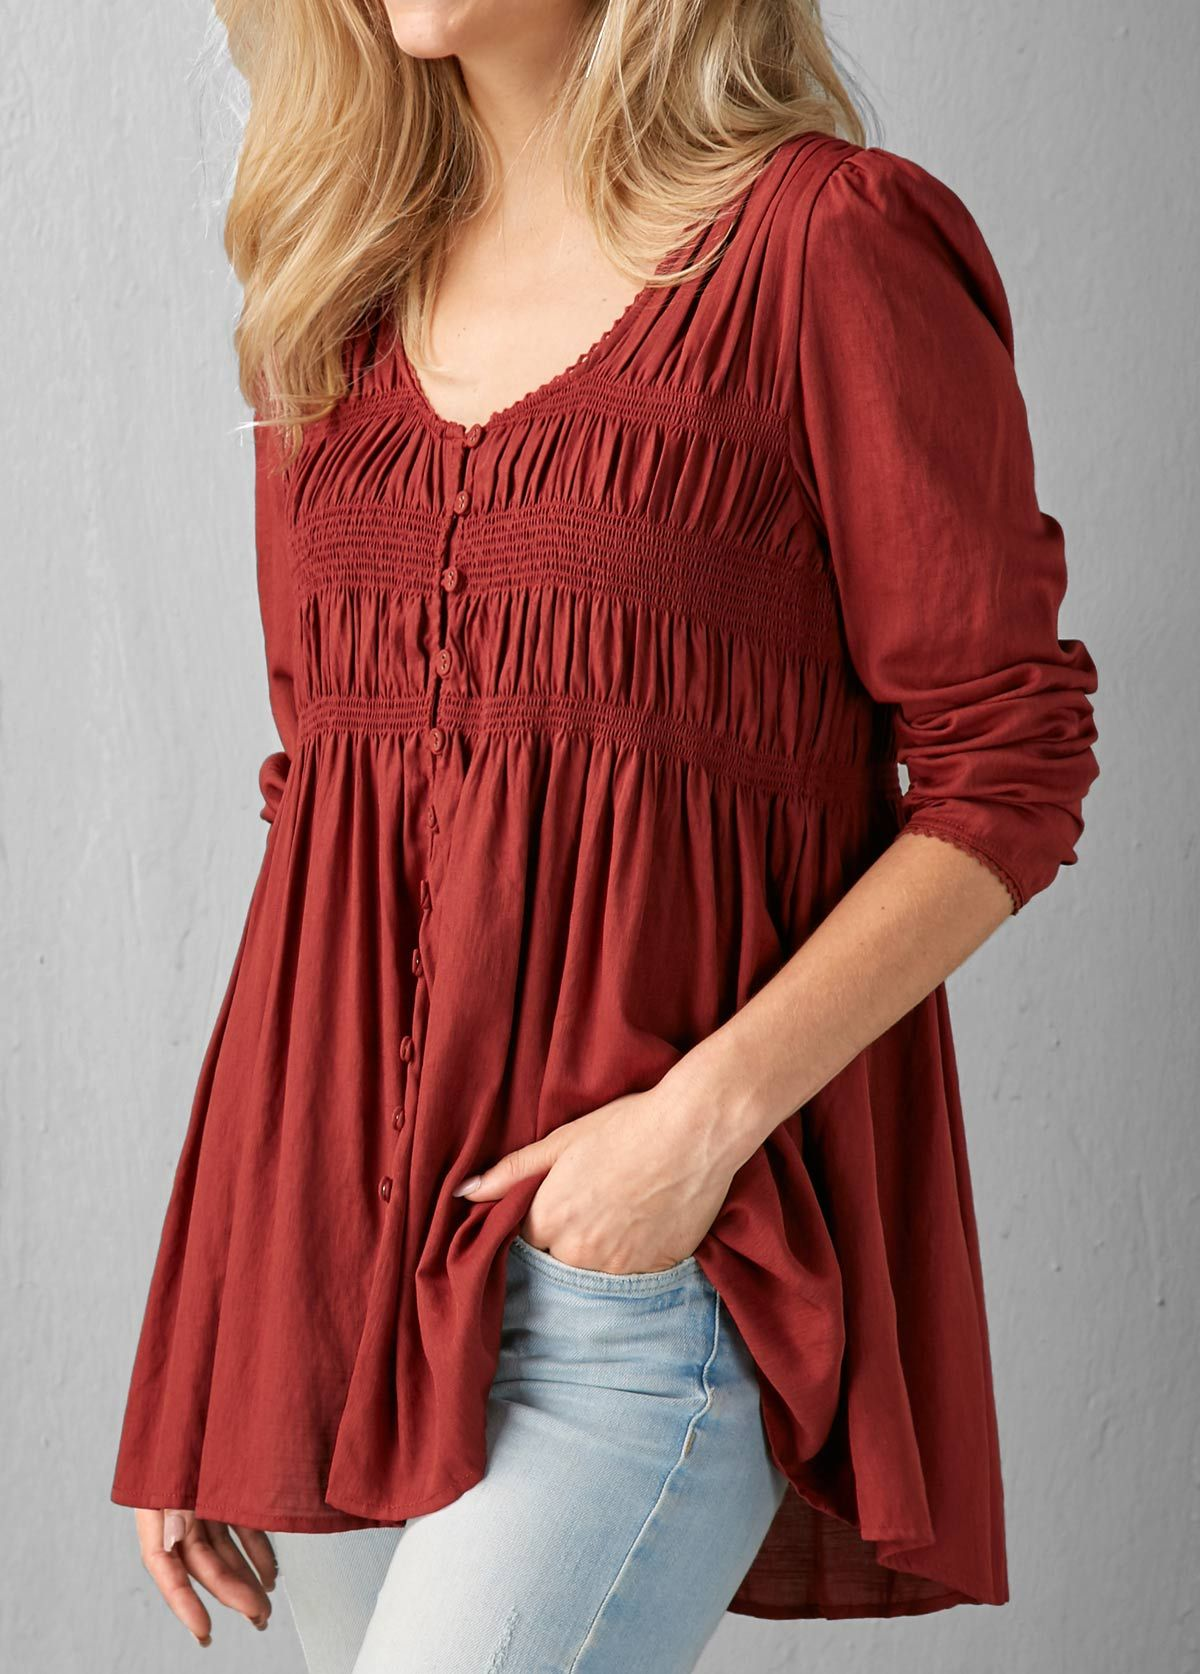 461cfd1ad51c Long Sleeve Button Up Burgundy Blouse